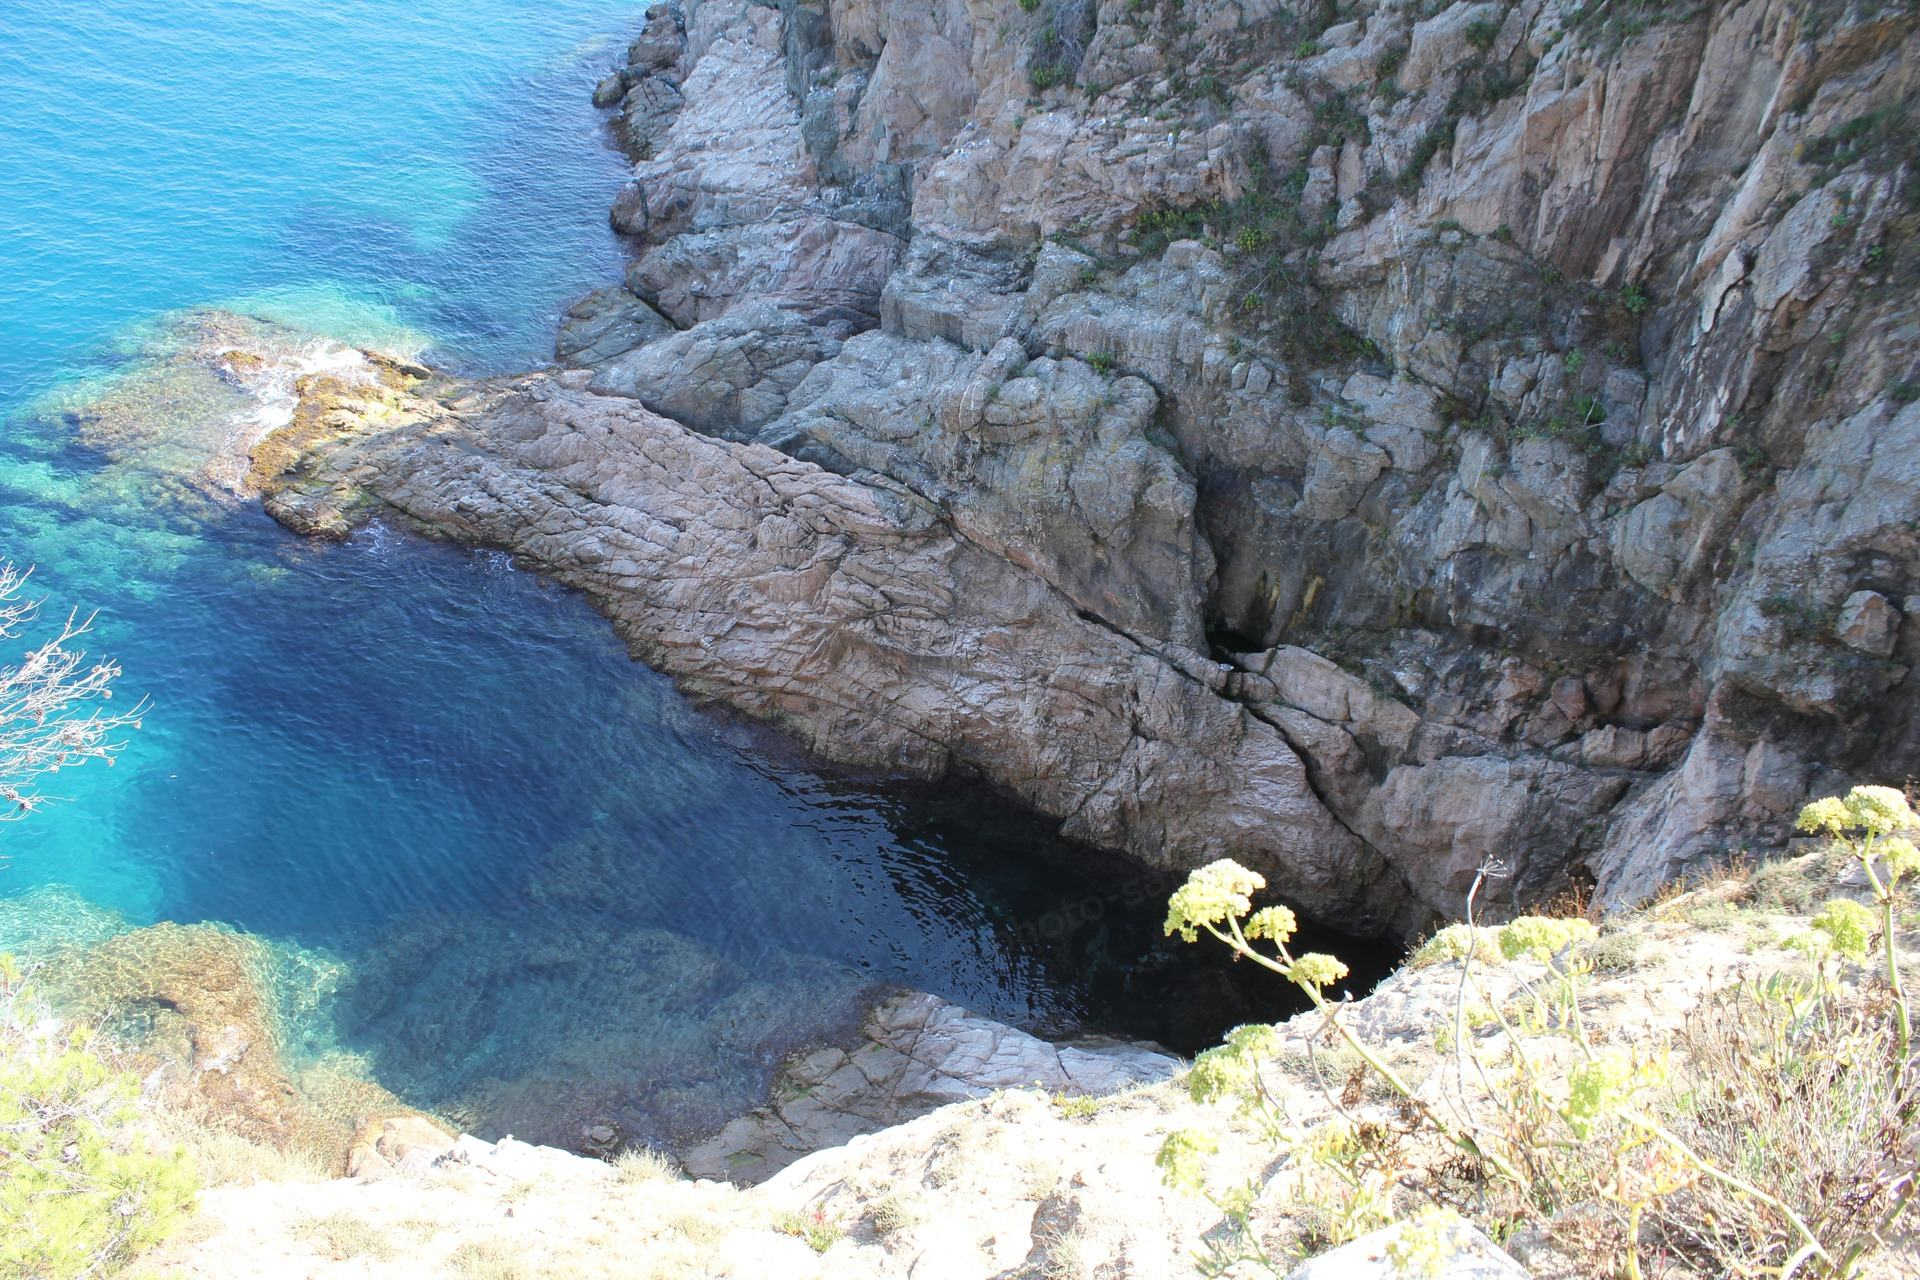 Flower above rock and sea